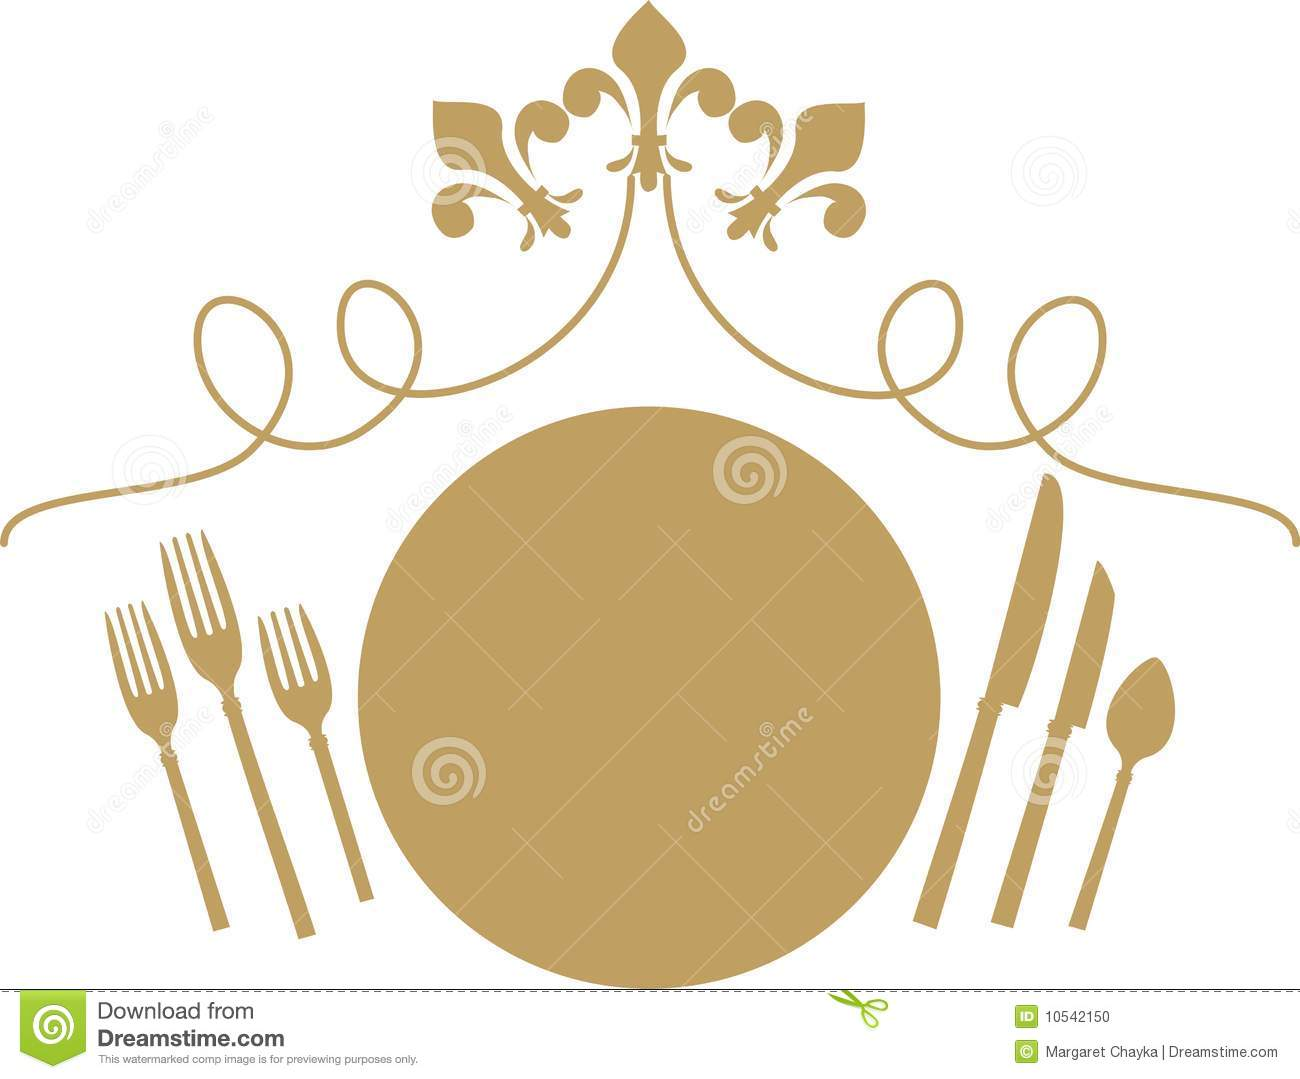 Formal dinner clipart.